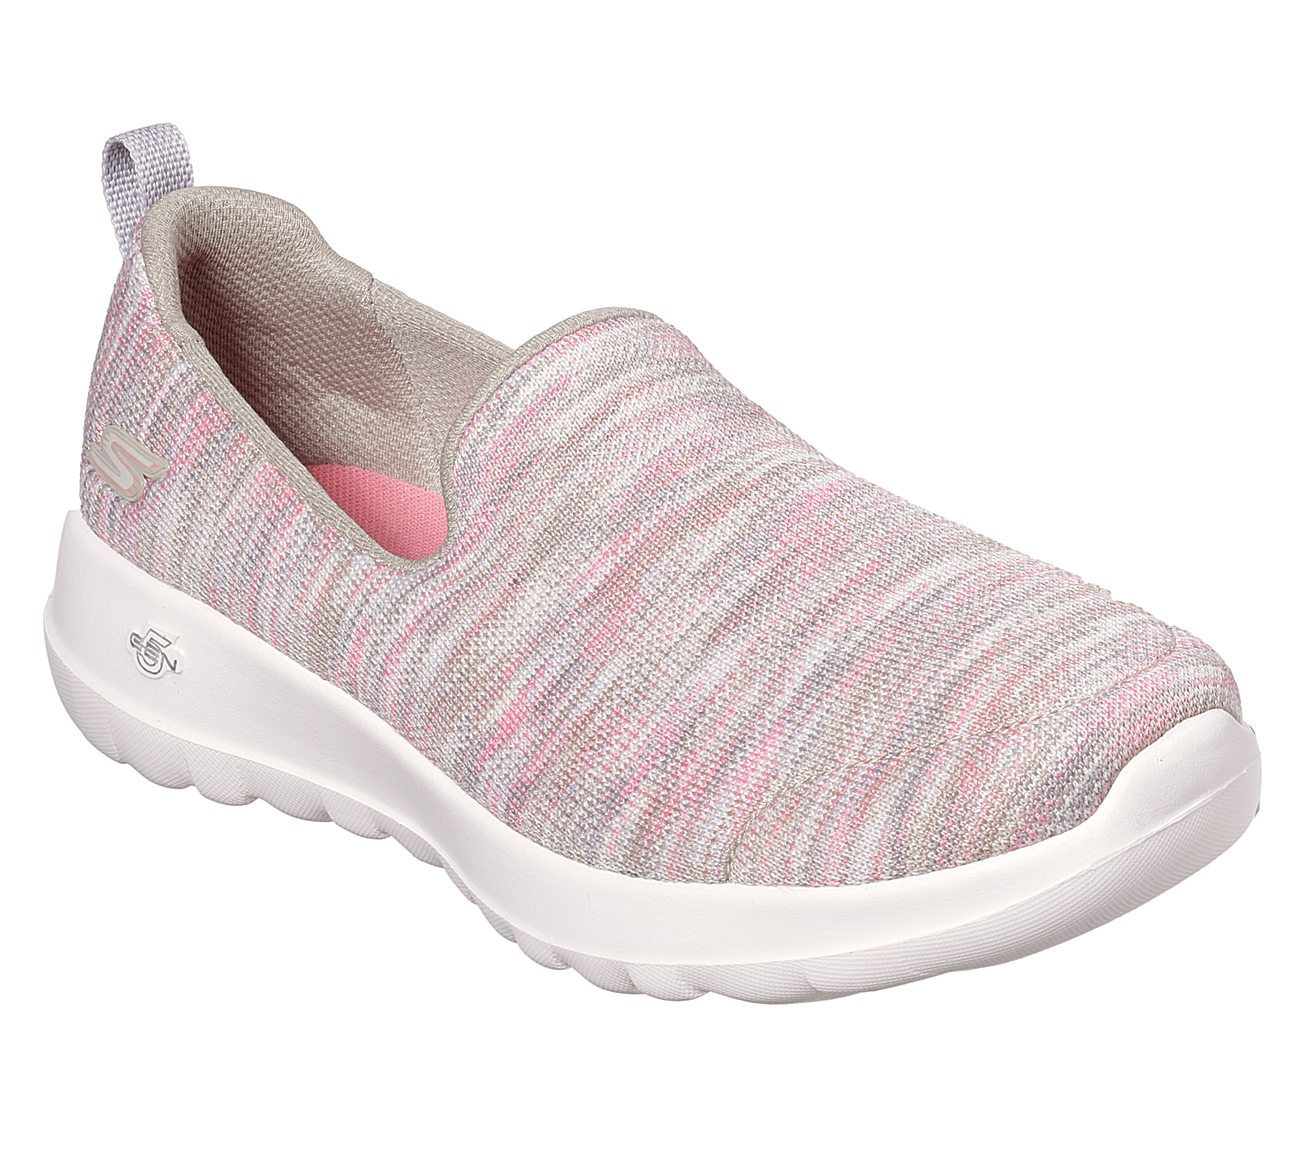 7b77df6e175d Buy SKECHERS Skechers GOwalk Joy - Terrific Skechers Performance ...